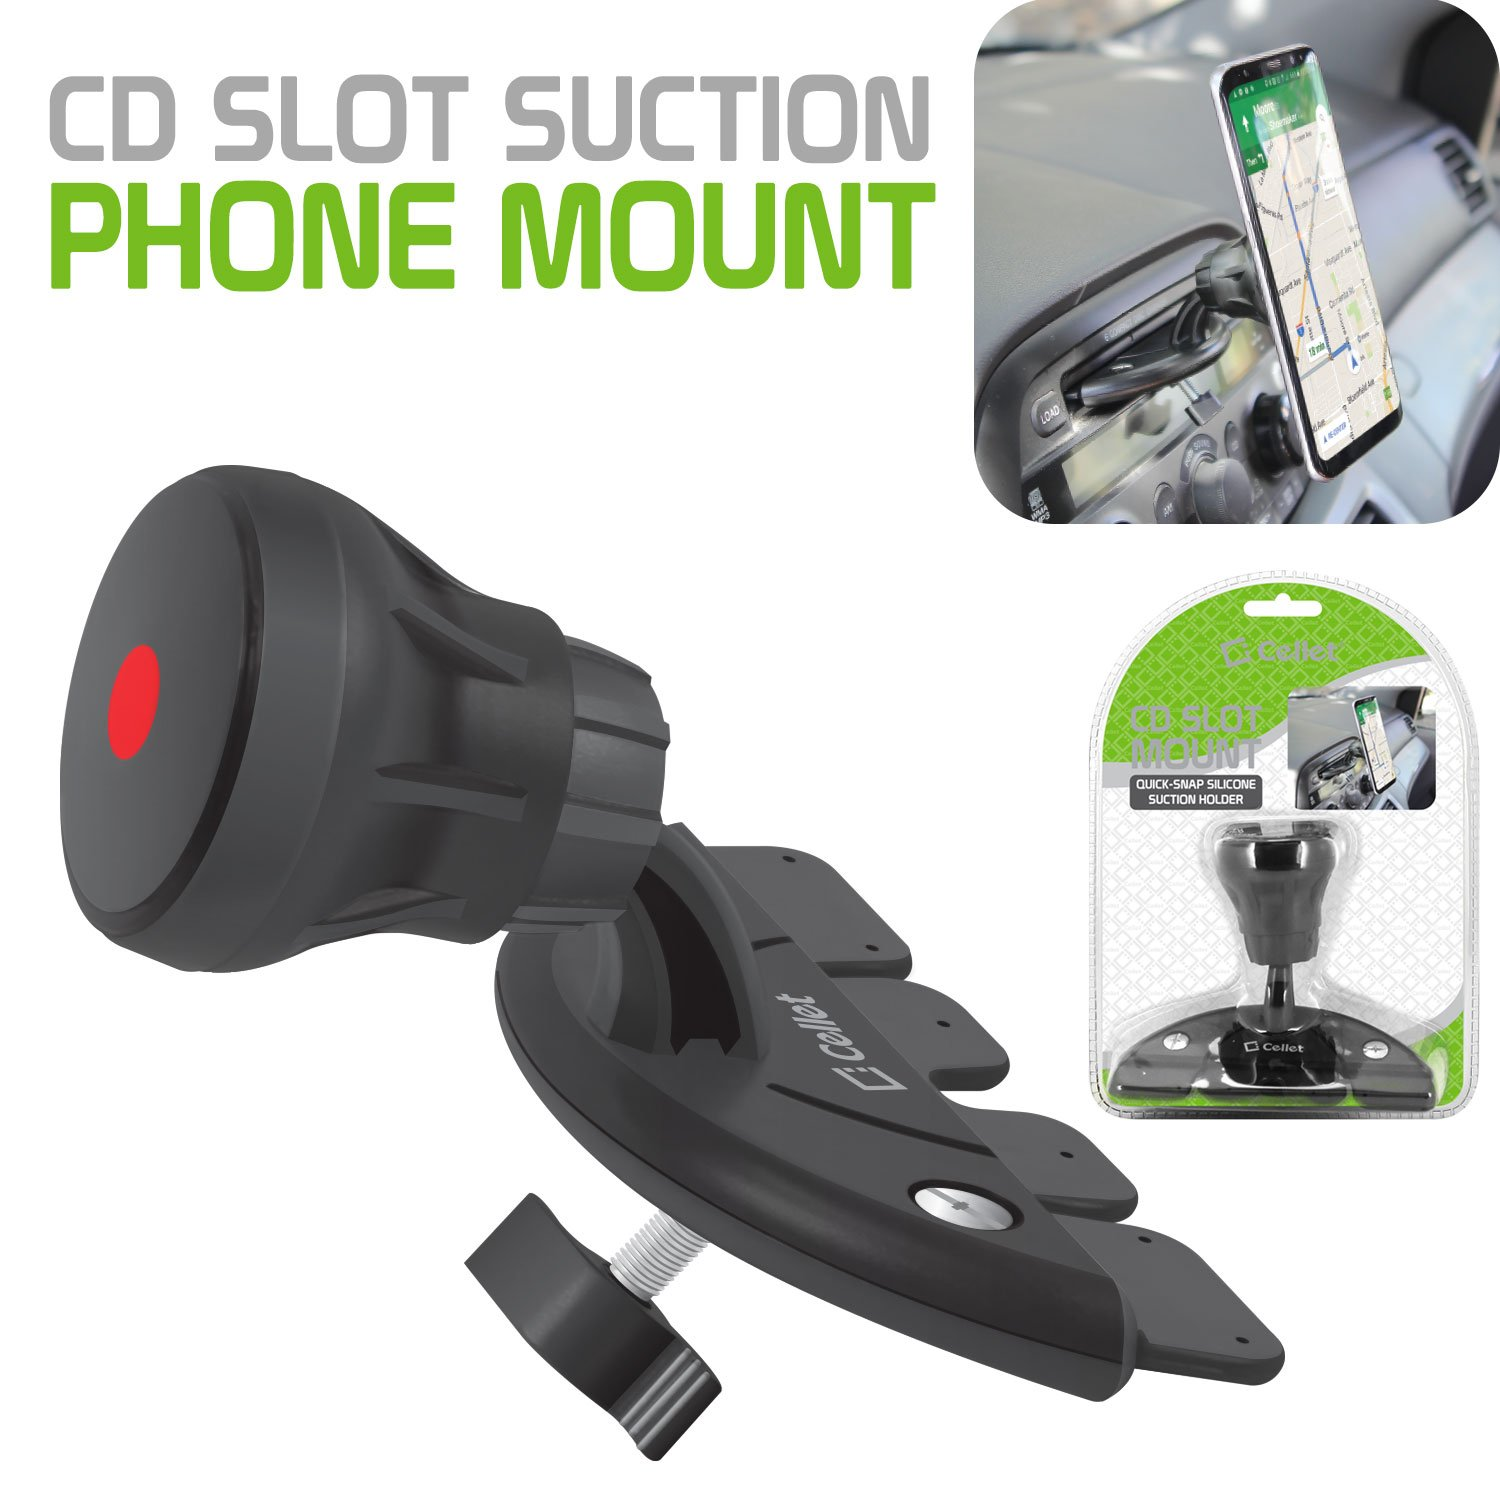 Cellet CD Slot Phone Mount Extra Strength Suction Cup with Quick-Snap Technology PHCD23CN Holder for Apple iPhone XS//Max//XR//X//8//Plus//7//Plus Samsung Note 9//8//5 Galaxy 9S//Plus//S8//Plus /& LG Motorola HTC Asus